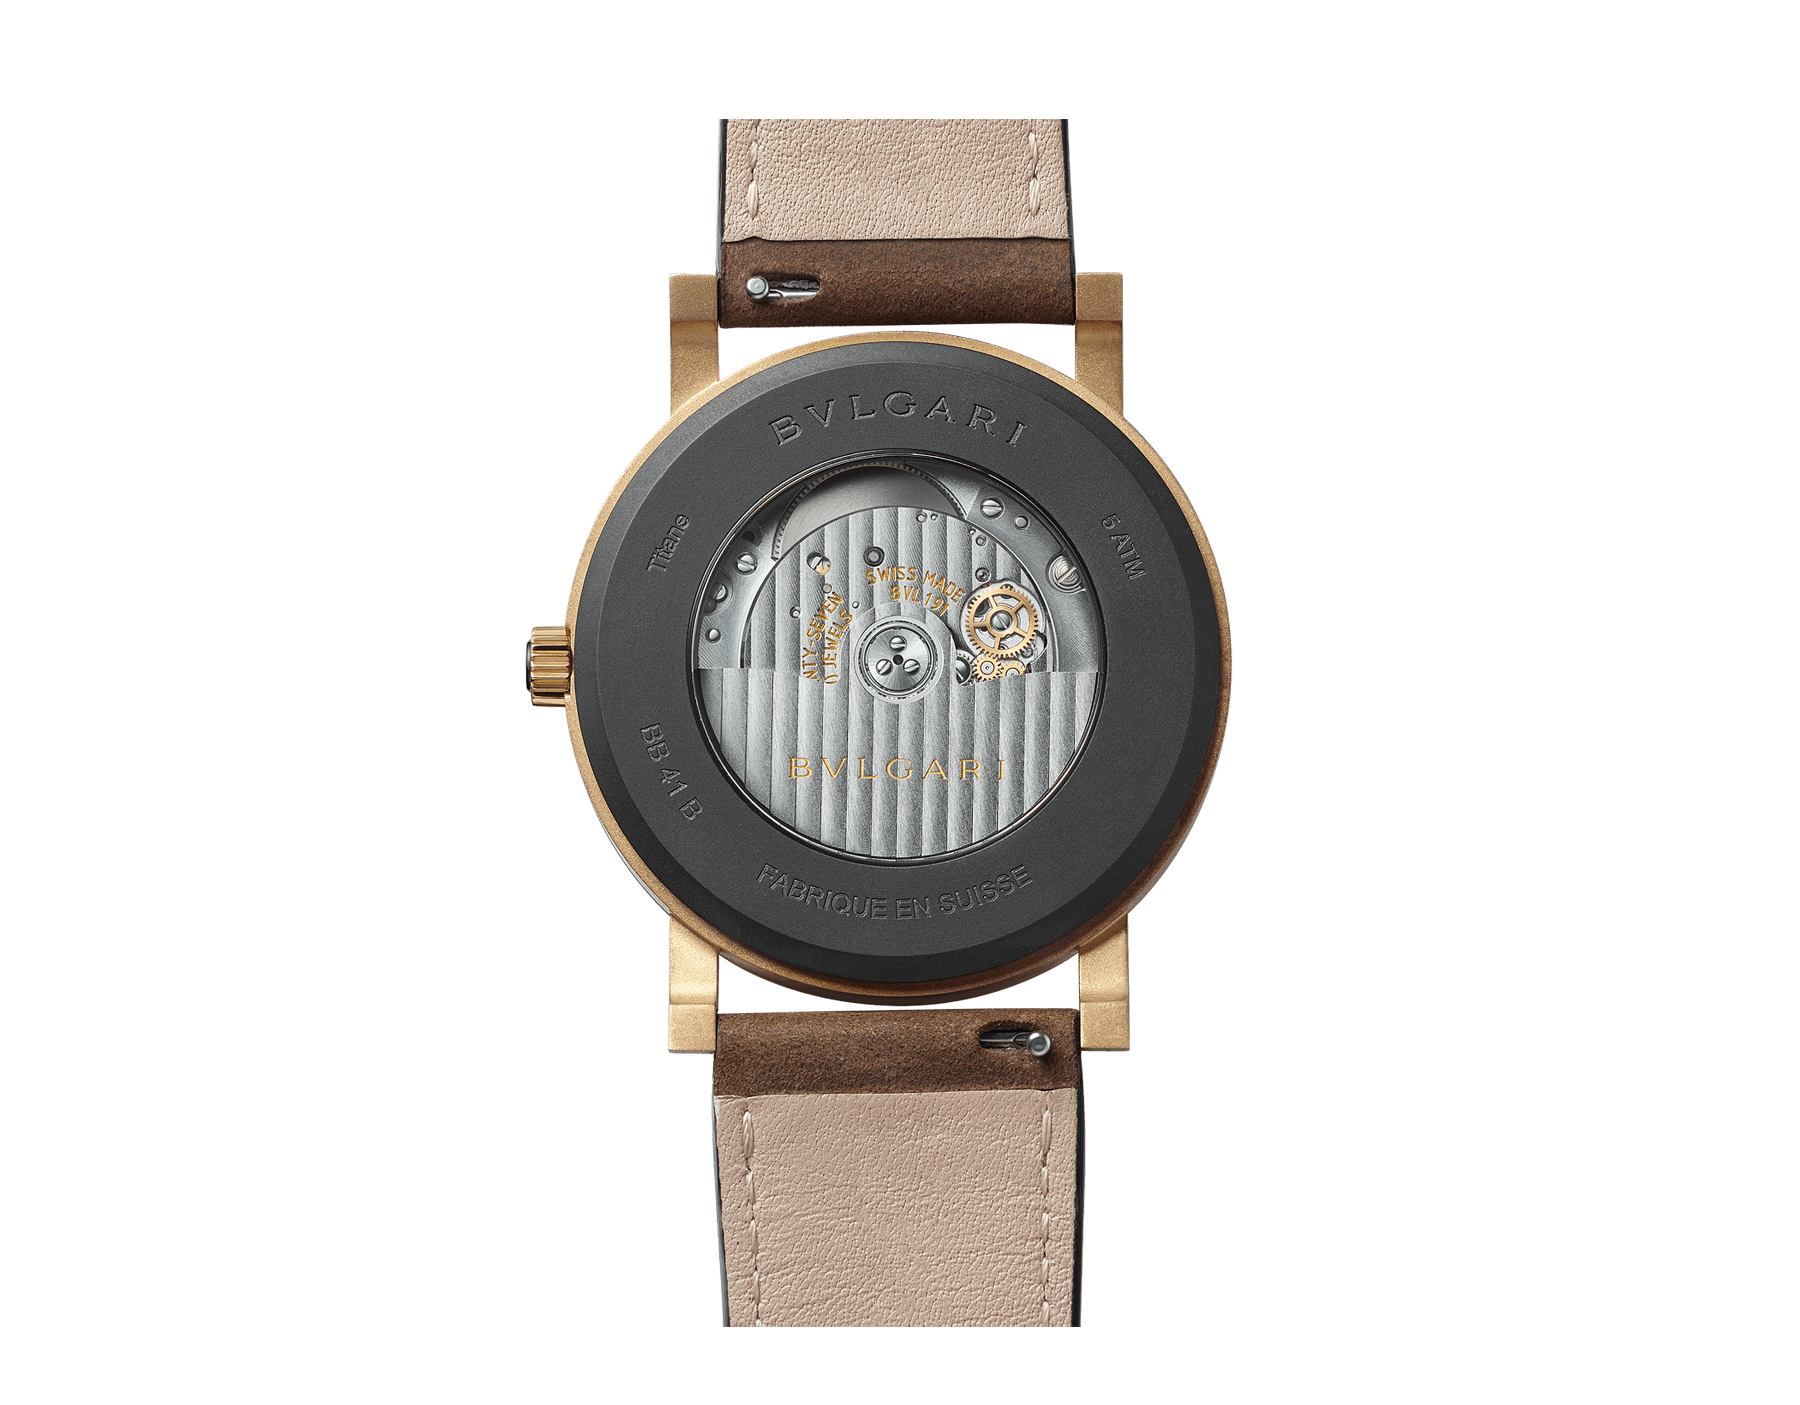 BVLGARI BVLGARI Solotempo watch with mechanical manufacture movement, automatic winding and date, bronze case, bronze bezel engraved with double logo, black dial and brown leather bracelet 102977 image 3